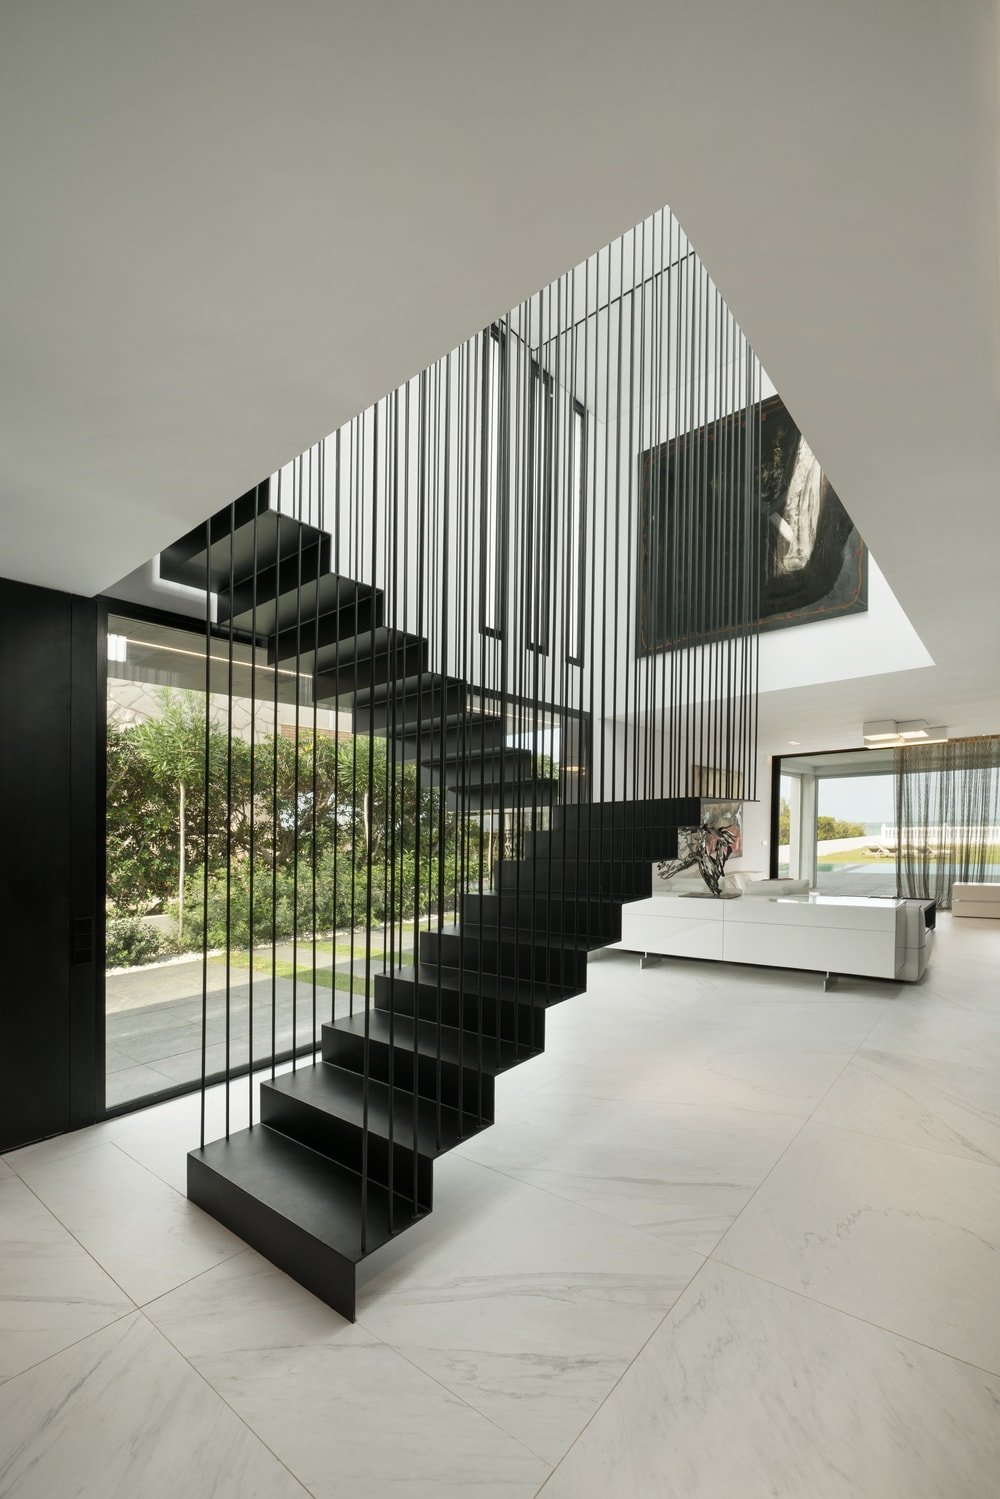 Upon entry of this beautiful home, you are welcomed by this simple yet astonishing foyer that has a modern black staircase that stands out against the white flooring tiles, white walls and white ceiling.